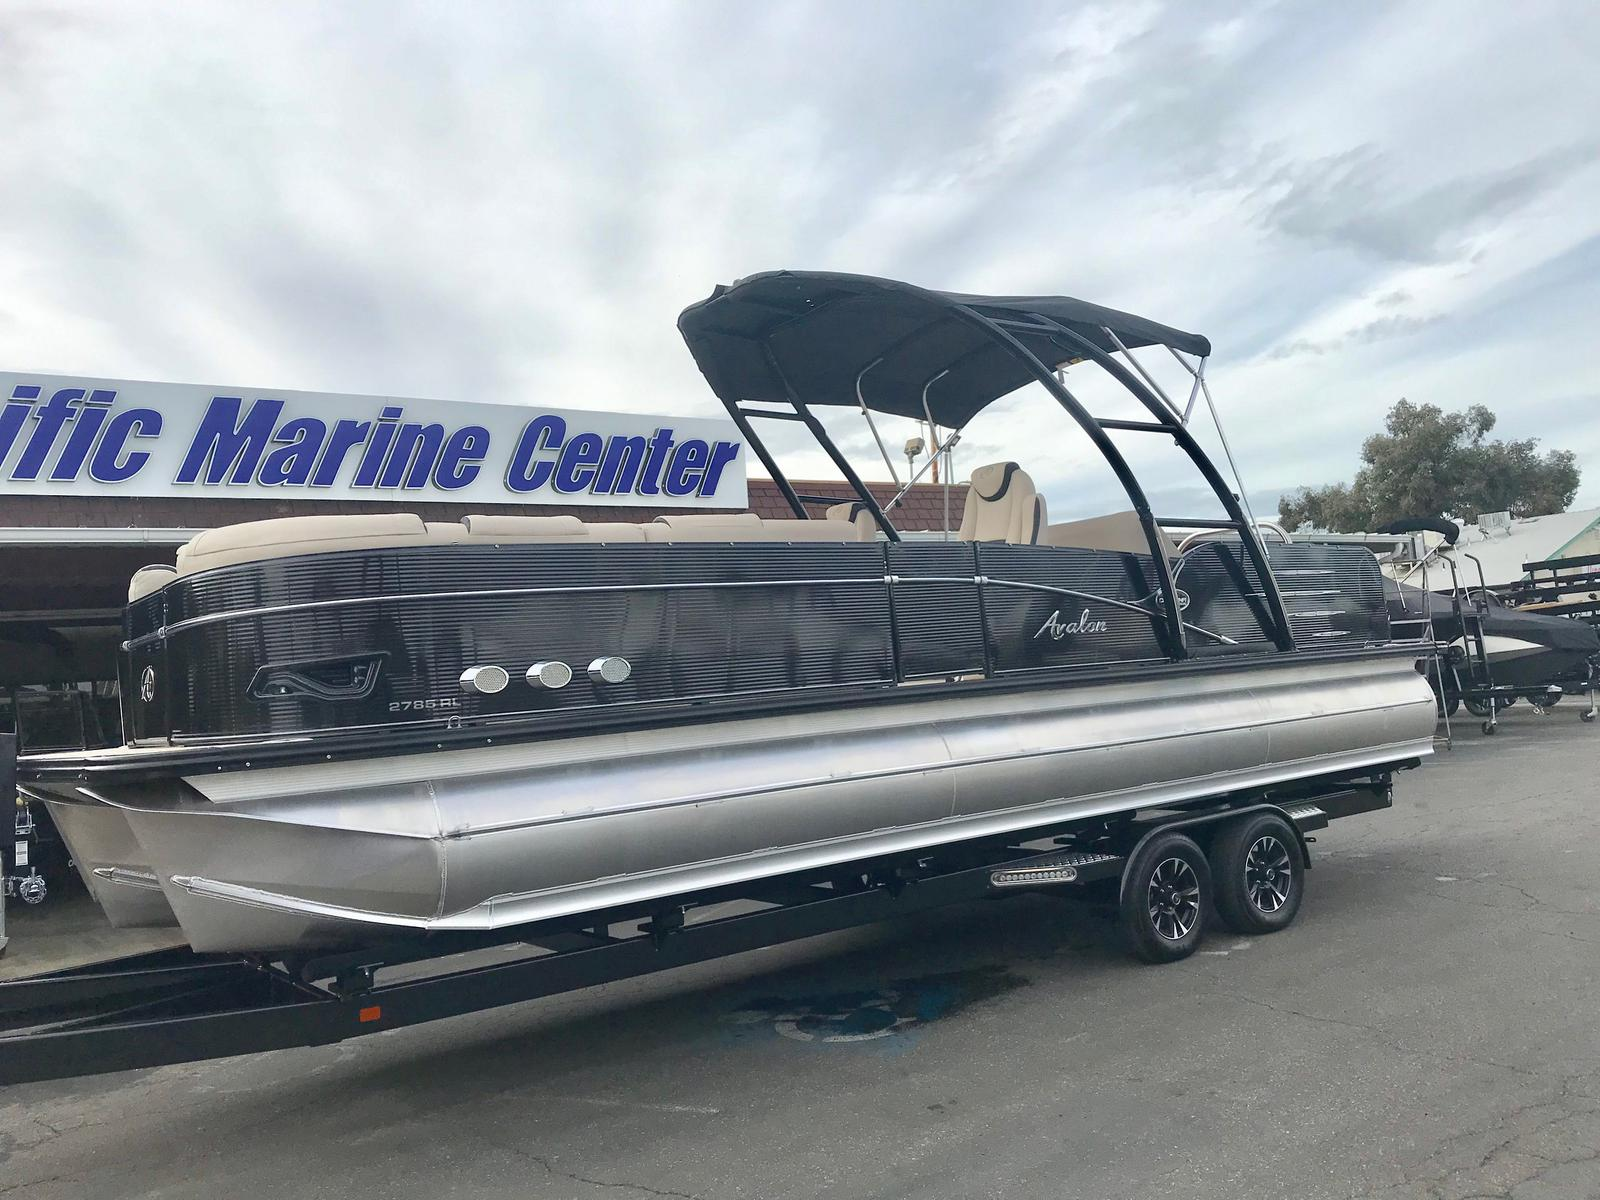 Avalon Catalina Platinum Rear Lounge 27'- 350 hp Mercury